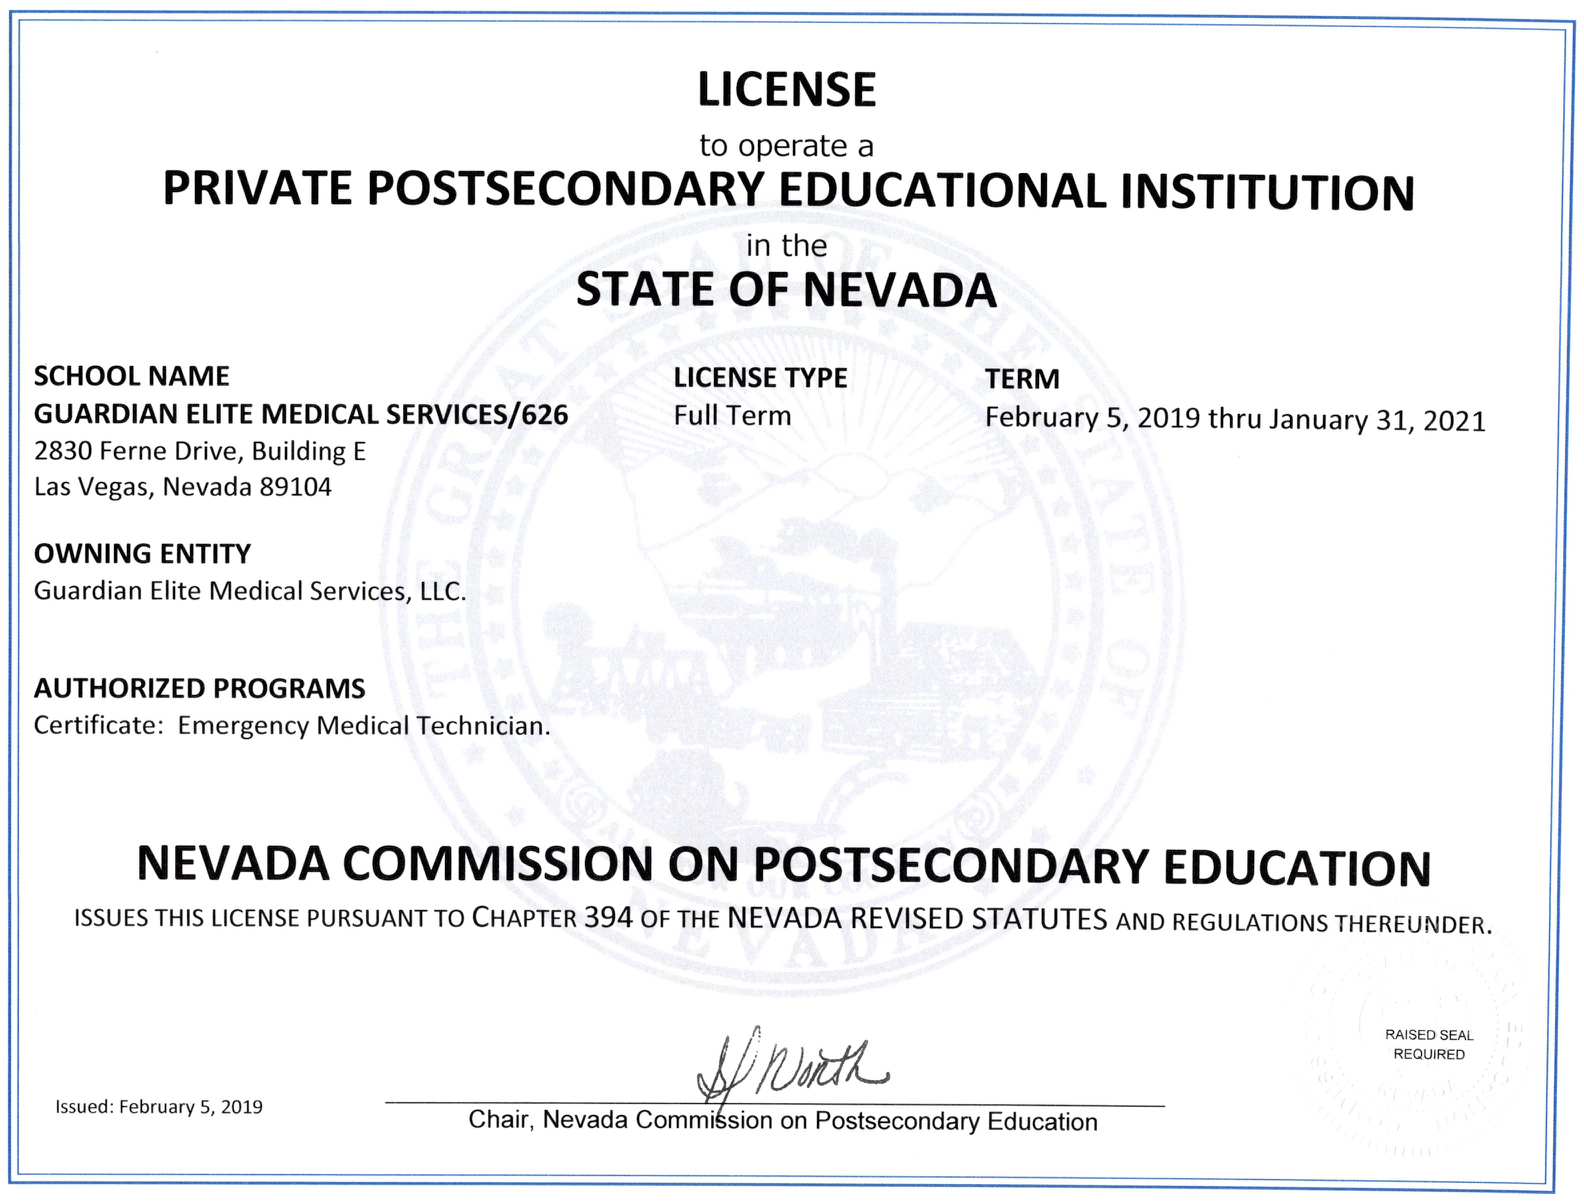 Guardian Elite Medical Services Is Awarded Full-Term License from The Commission on Postsecondary Education